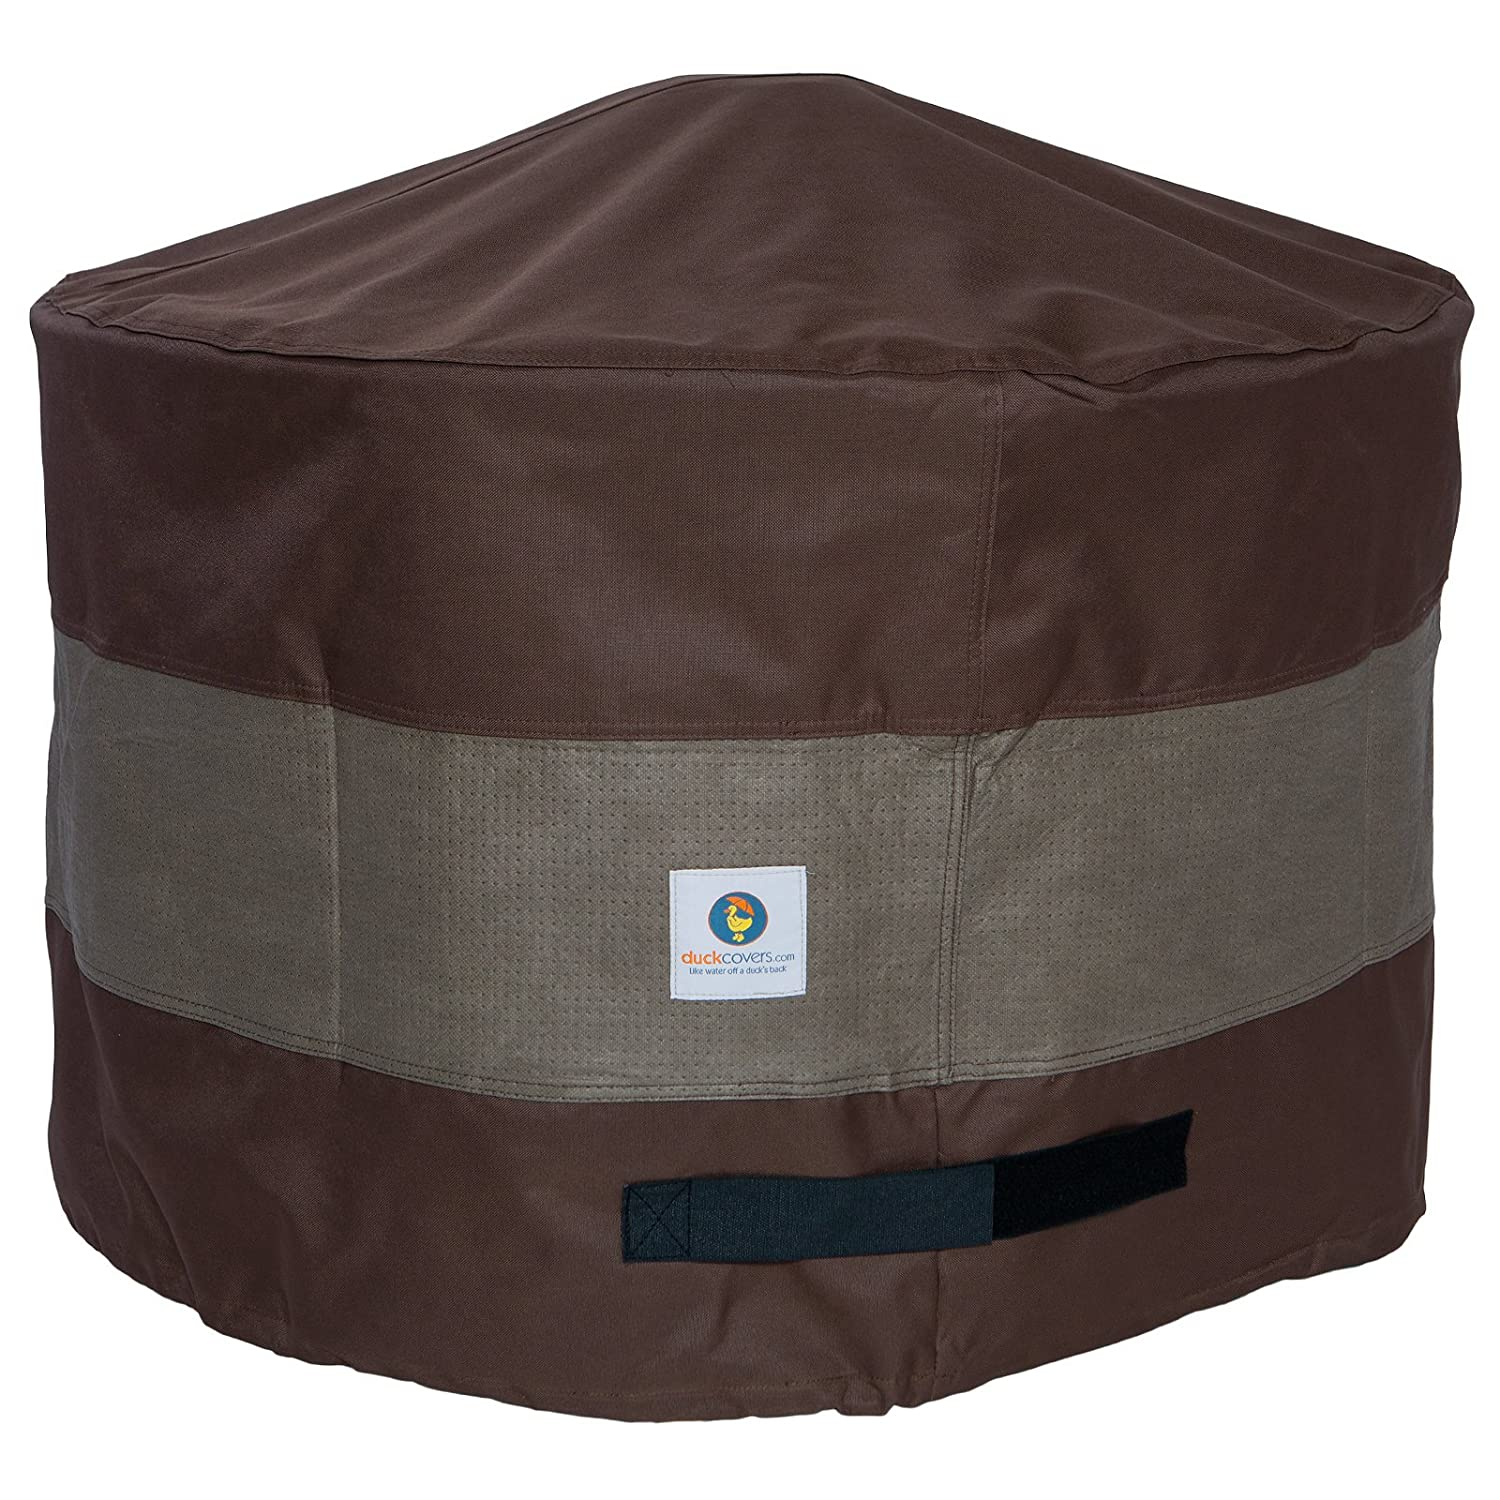 Duck Covers Ultimate Round Fire Pit Cover, 36 Inch